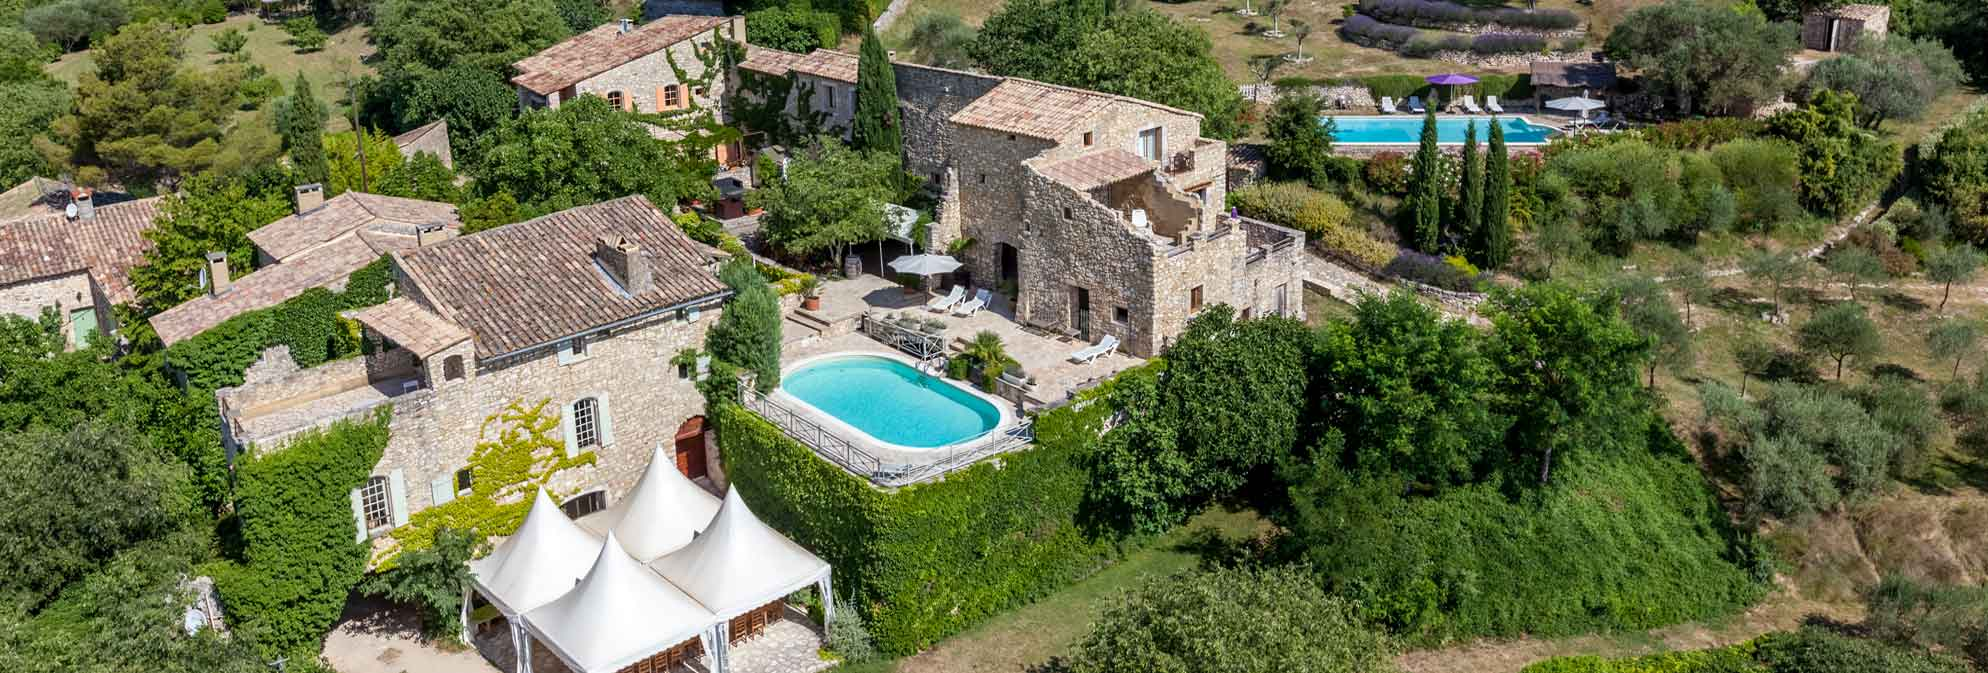 wedding country estate avignon provence gard - Mas Provencal Mariage